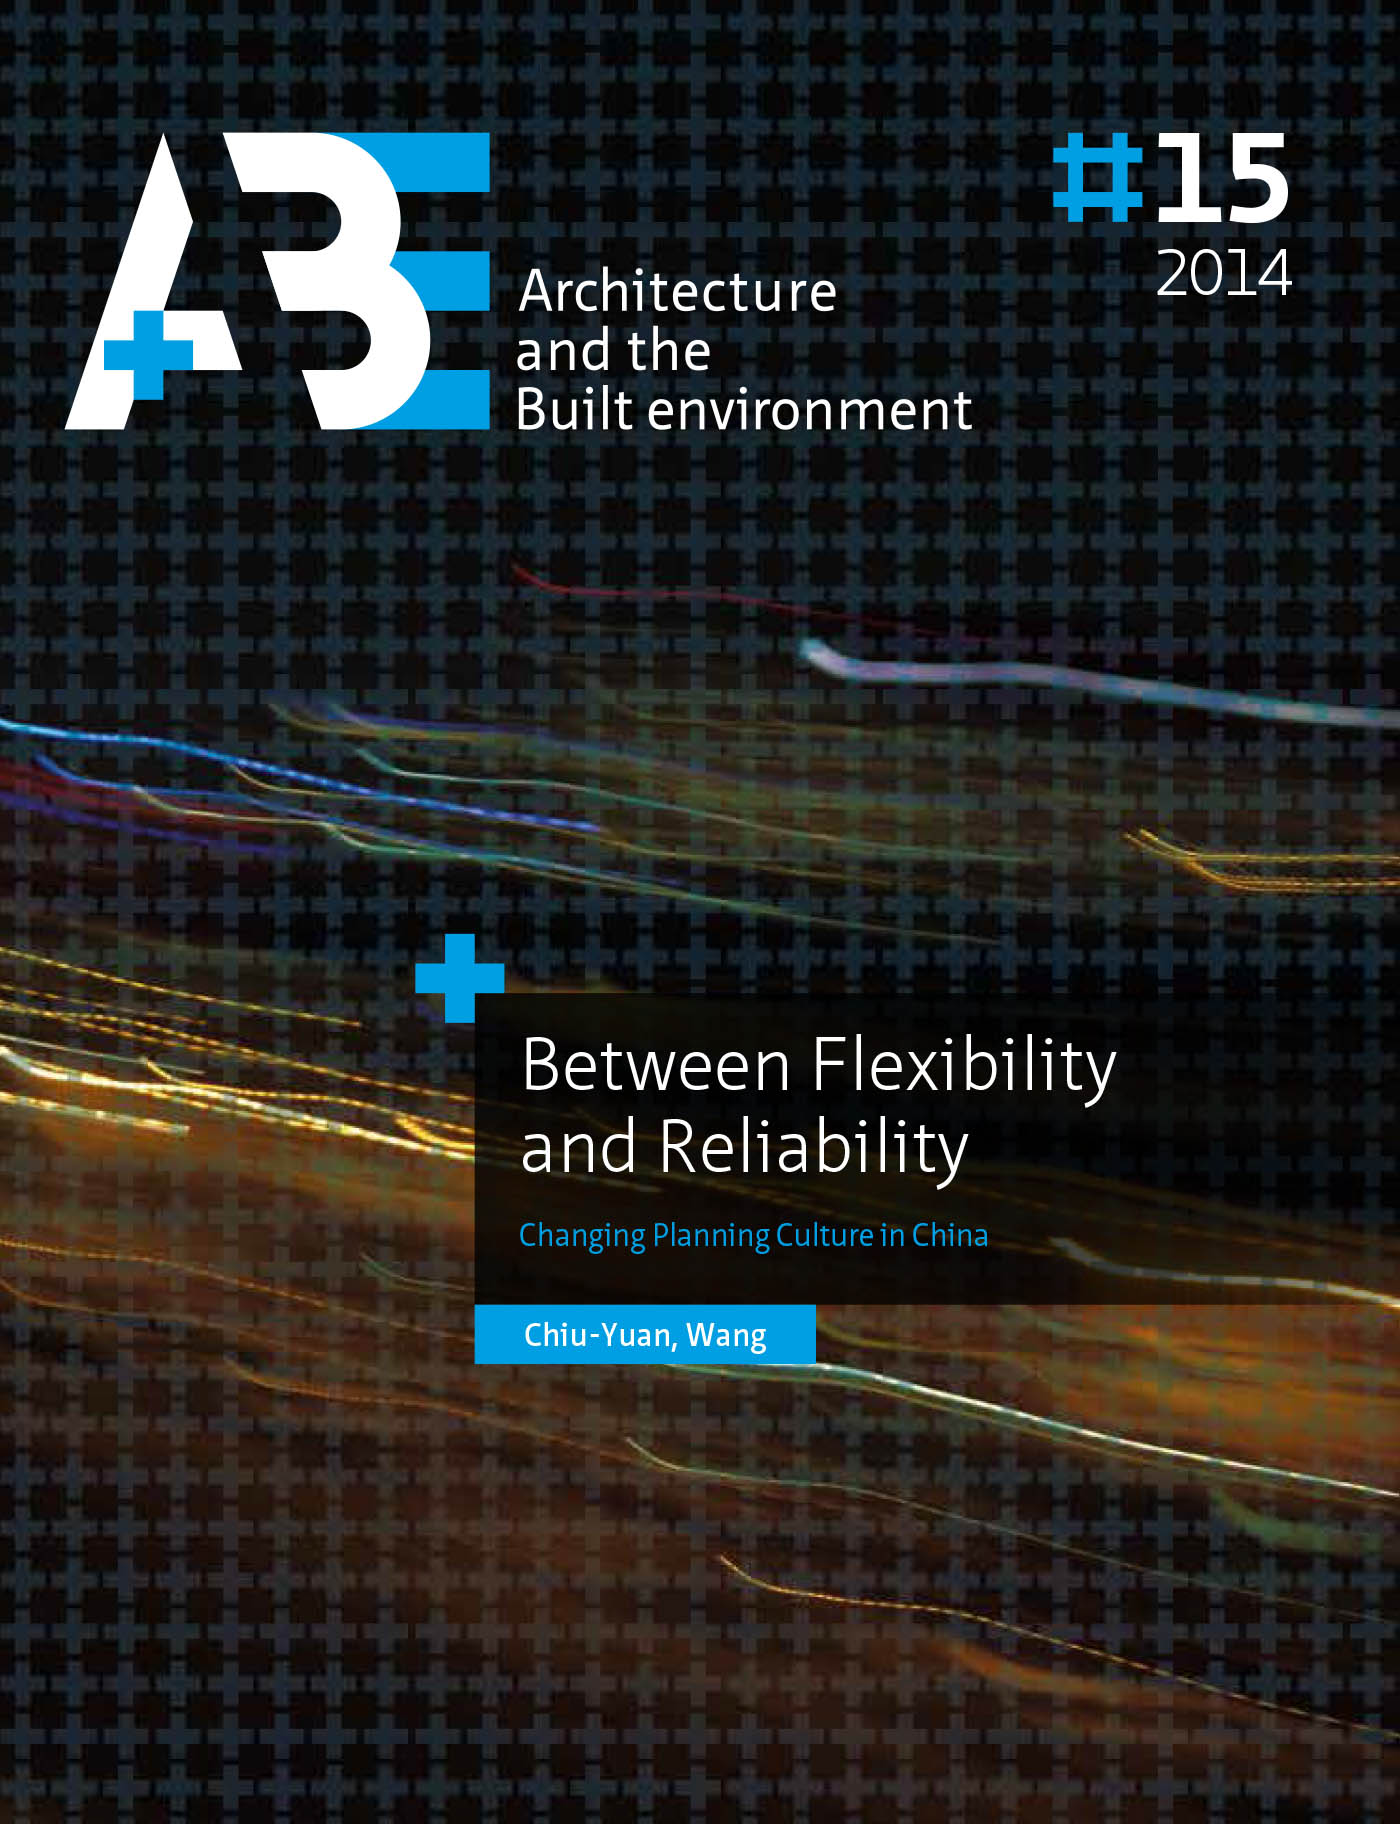 Between Flexibility and Reliability